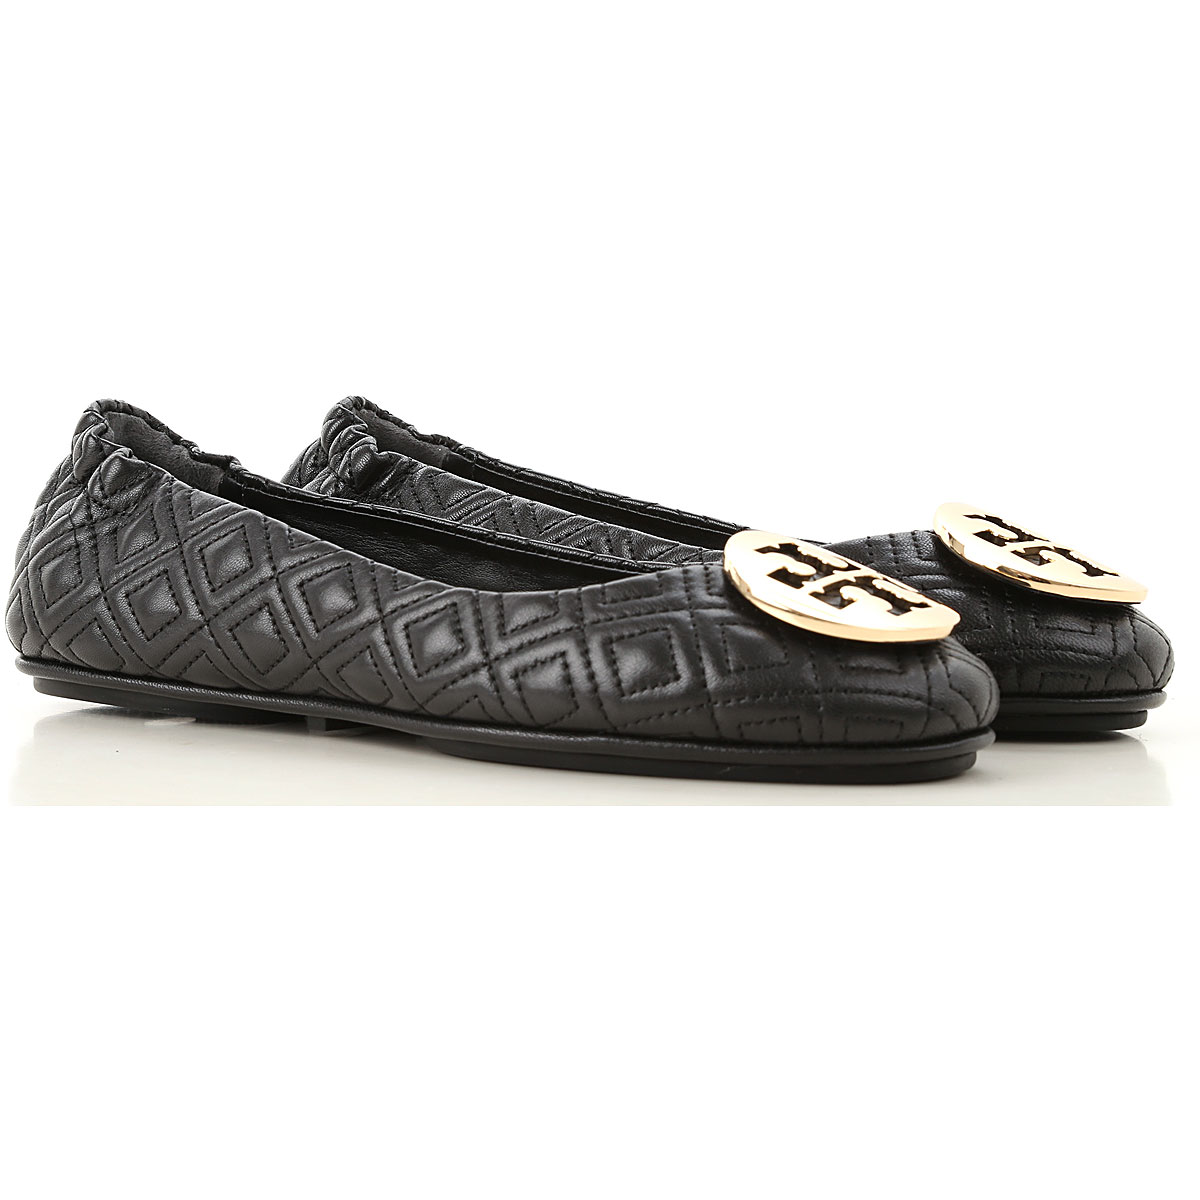 Tory Burch Ballet Flats Ballerina Shoes for Women On Sale, Black, Leather, 2019, 5 5.5 6 6.5 7